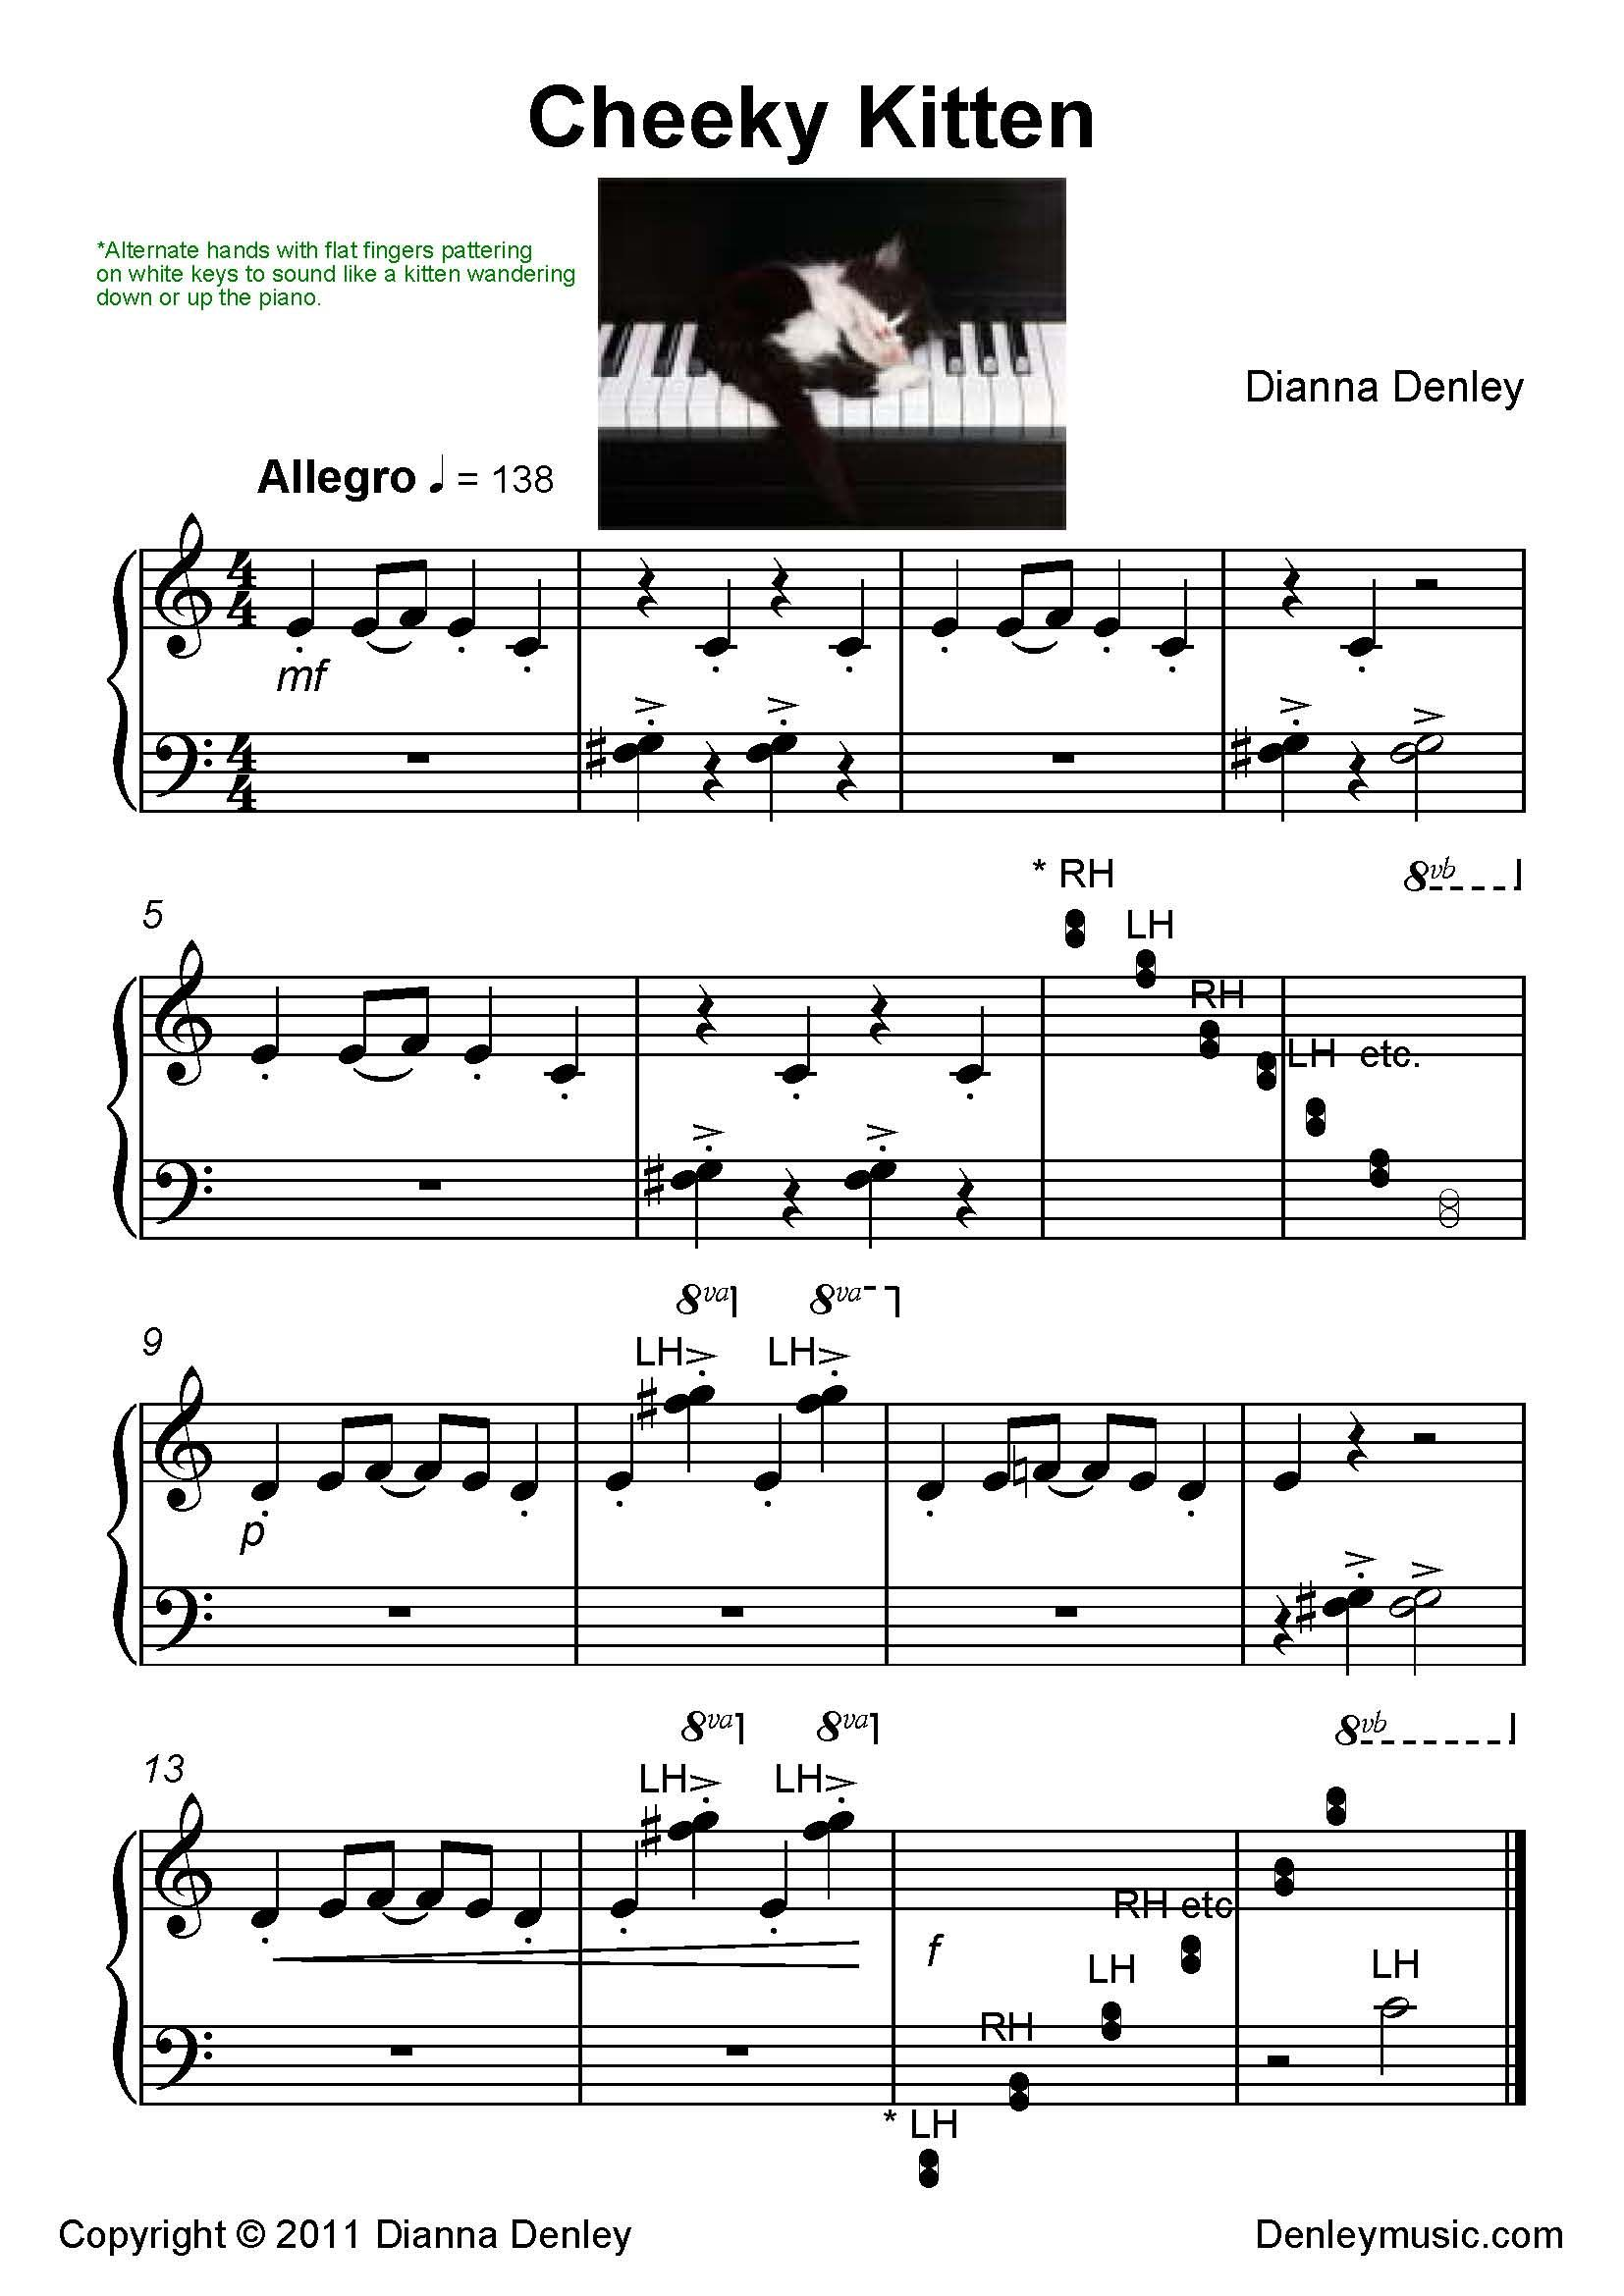 Denley Music Free Music Materials Designed For Teacher Student And Personal Use Piano Music Teaching Music Piano Sheet Music